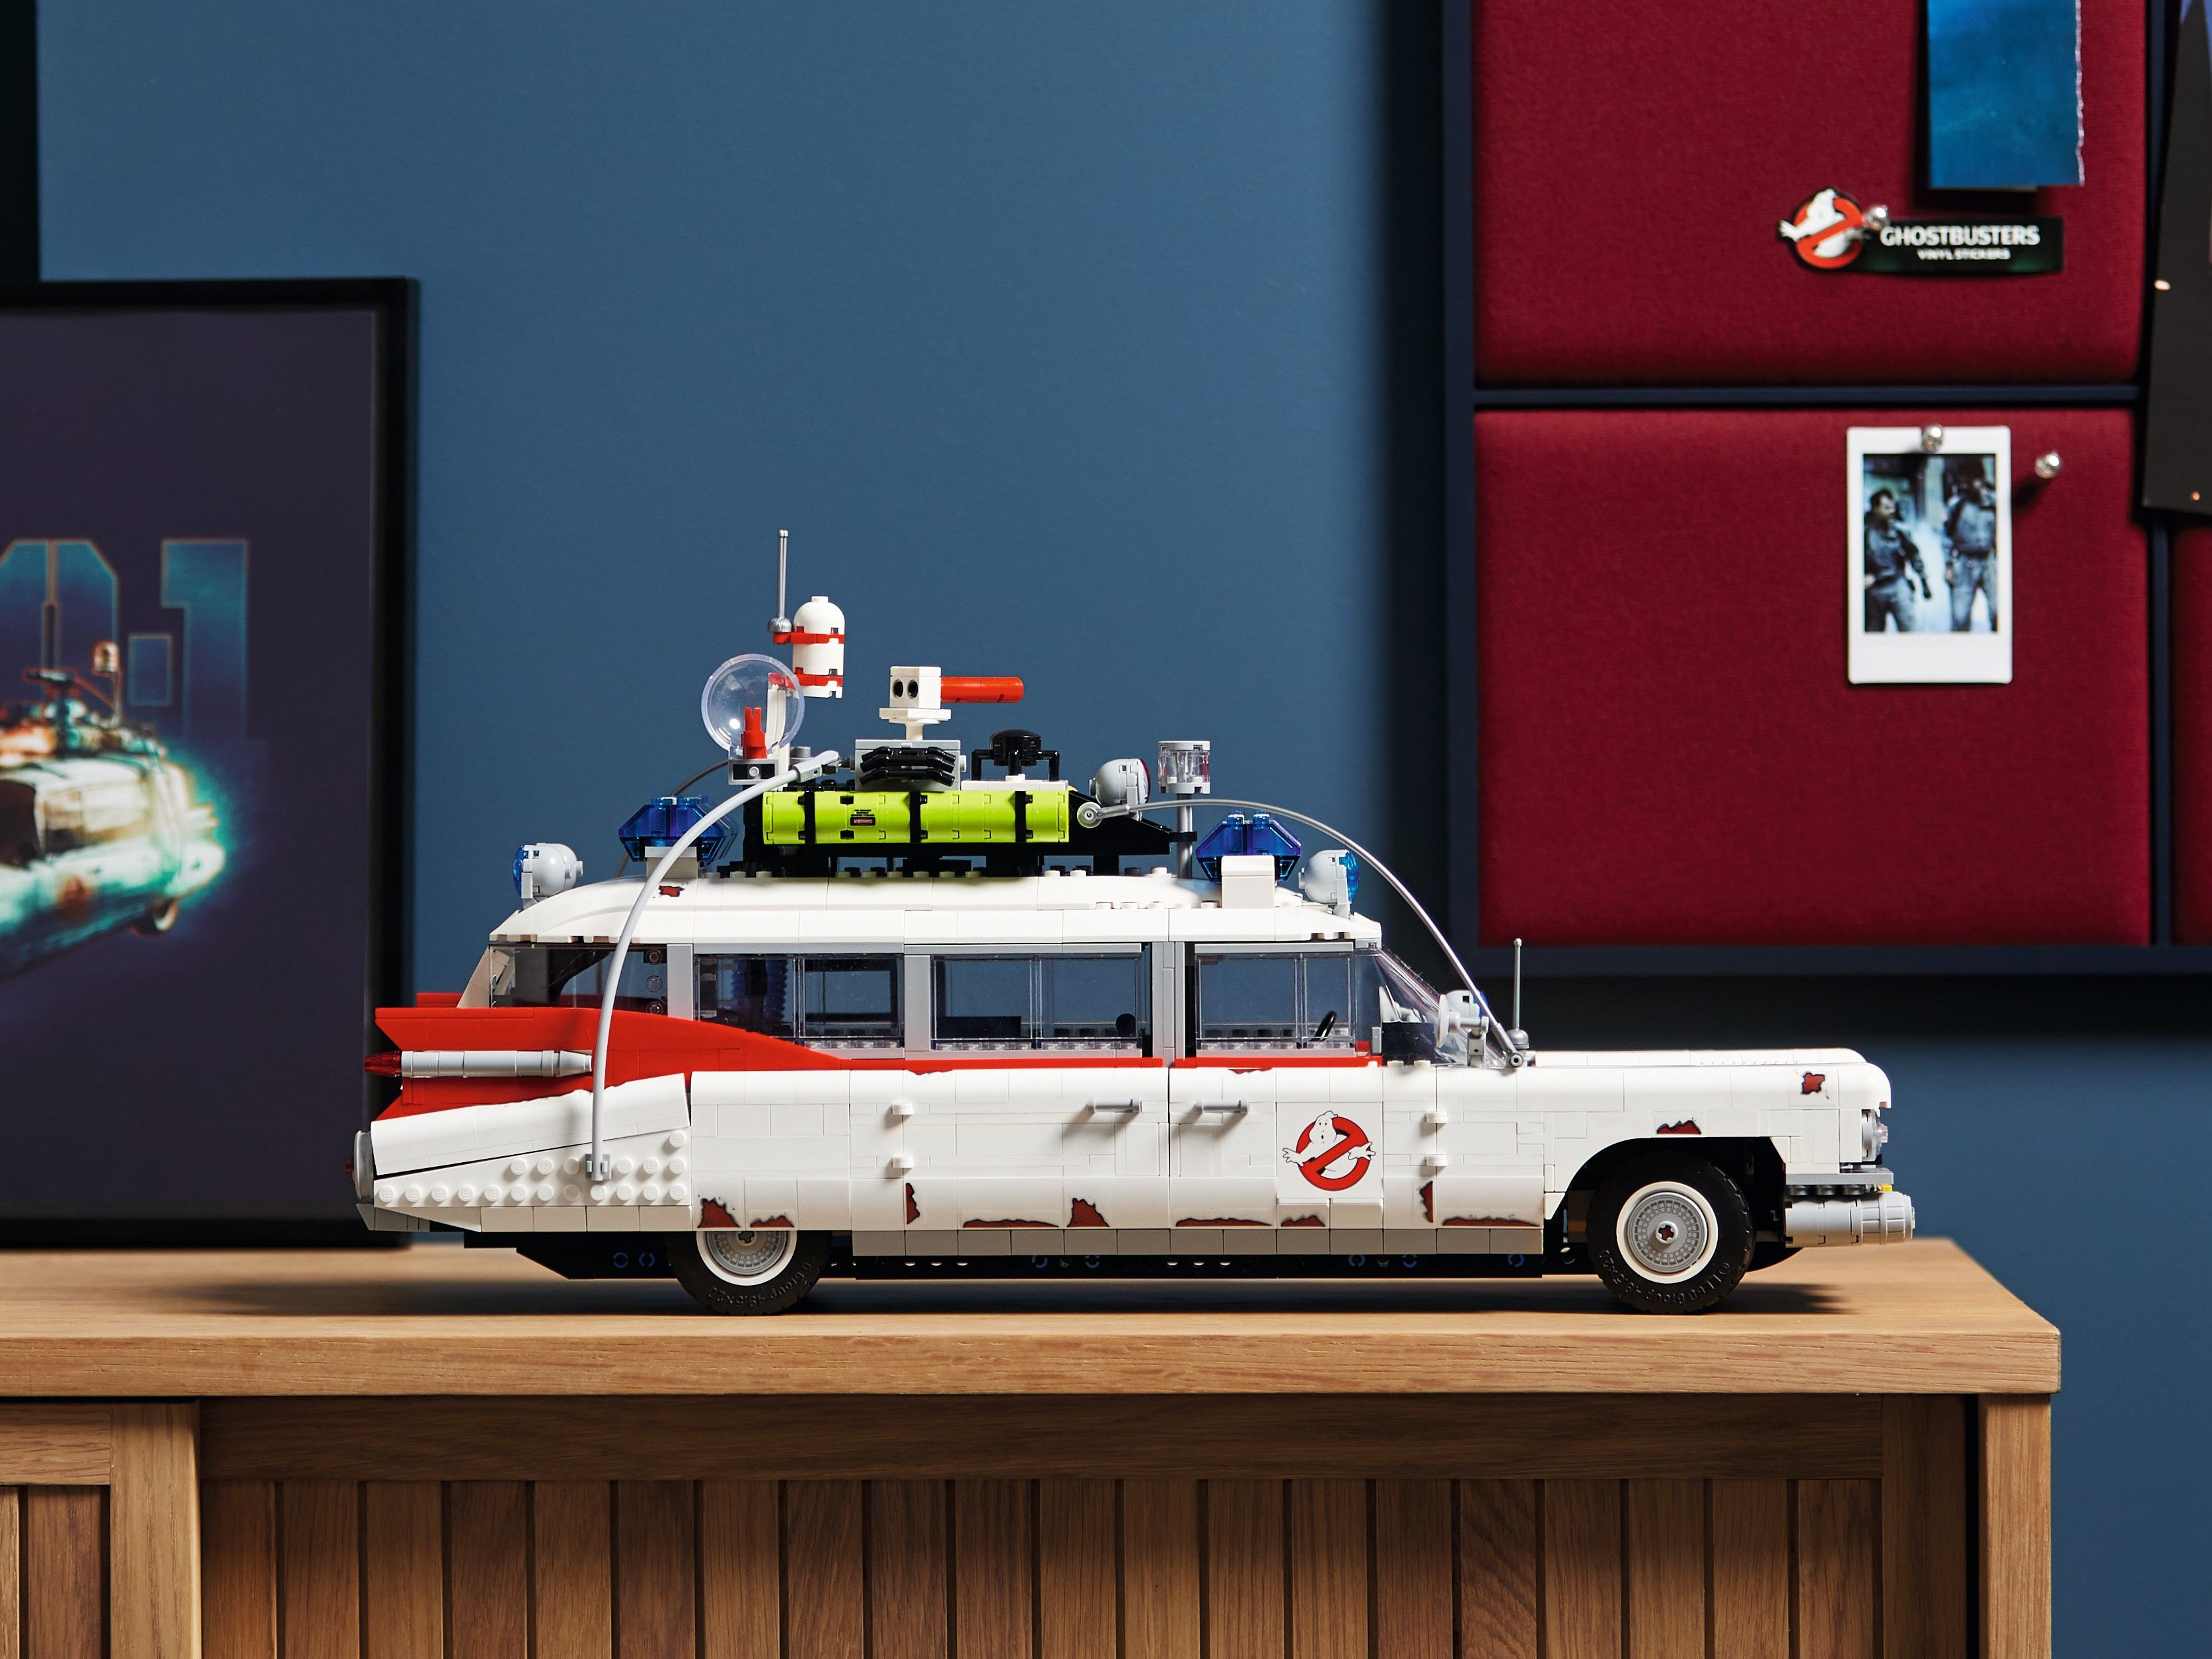 LEGO Advanced Models 10274 Ghostbusters™ ECTO-1 LEGO_10274_alt23.jpg